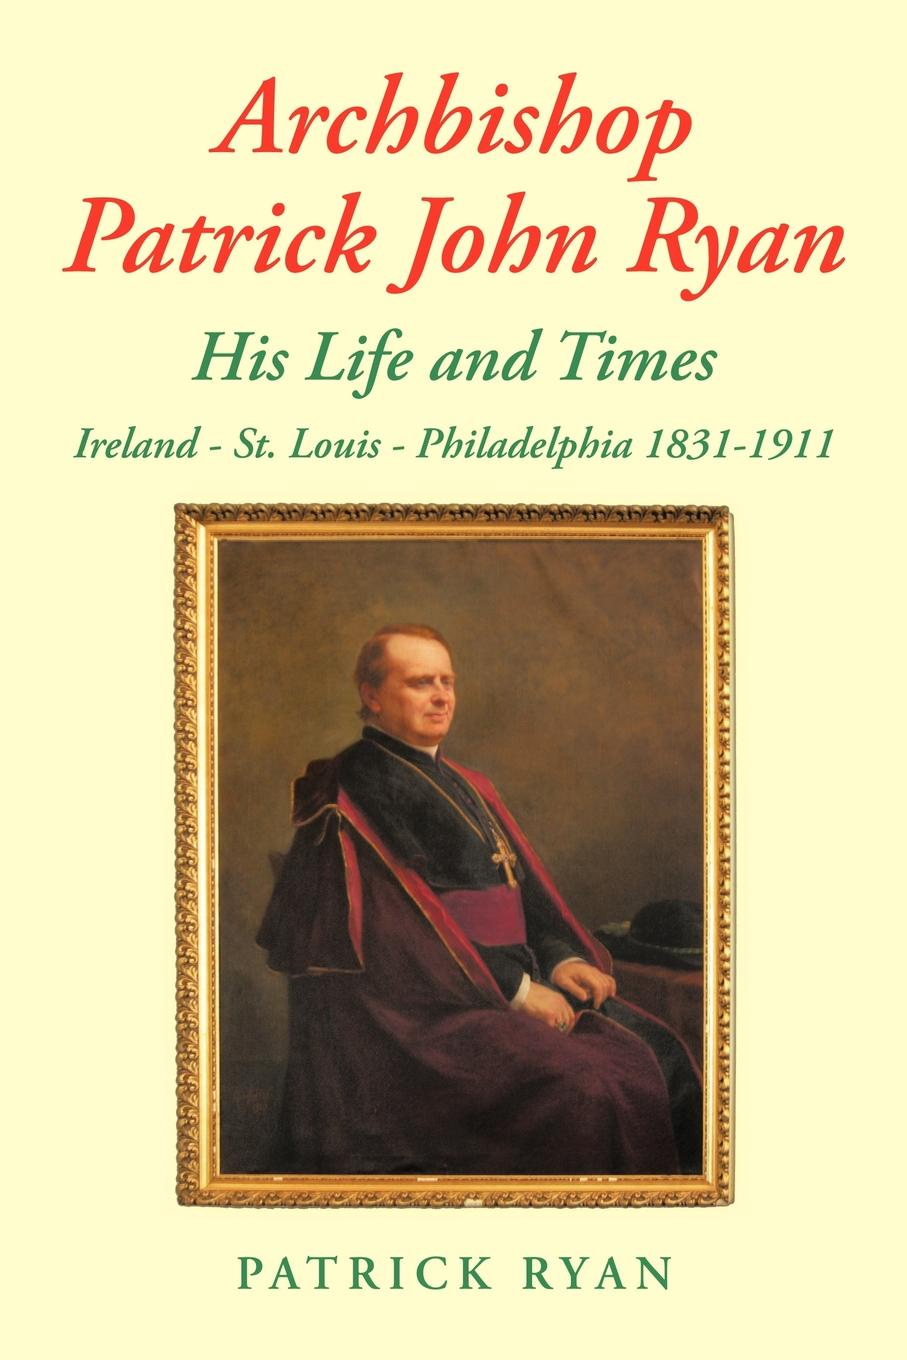 Patrick Ryan Archbishop Patrick John Ryan His Life and Times. Ireland - St. Louis - Philadelphia 1831-1911 fiech saint bishop of sletty a hymn on the life virtues and miracles of st patrick